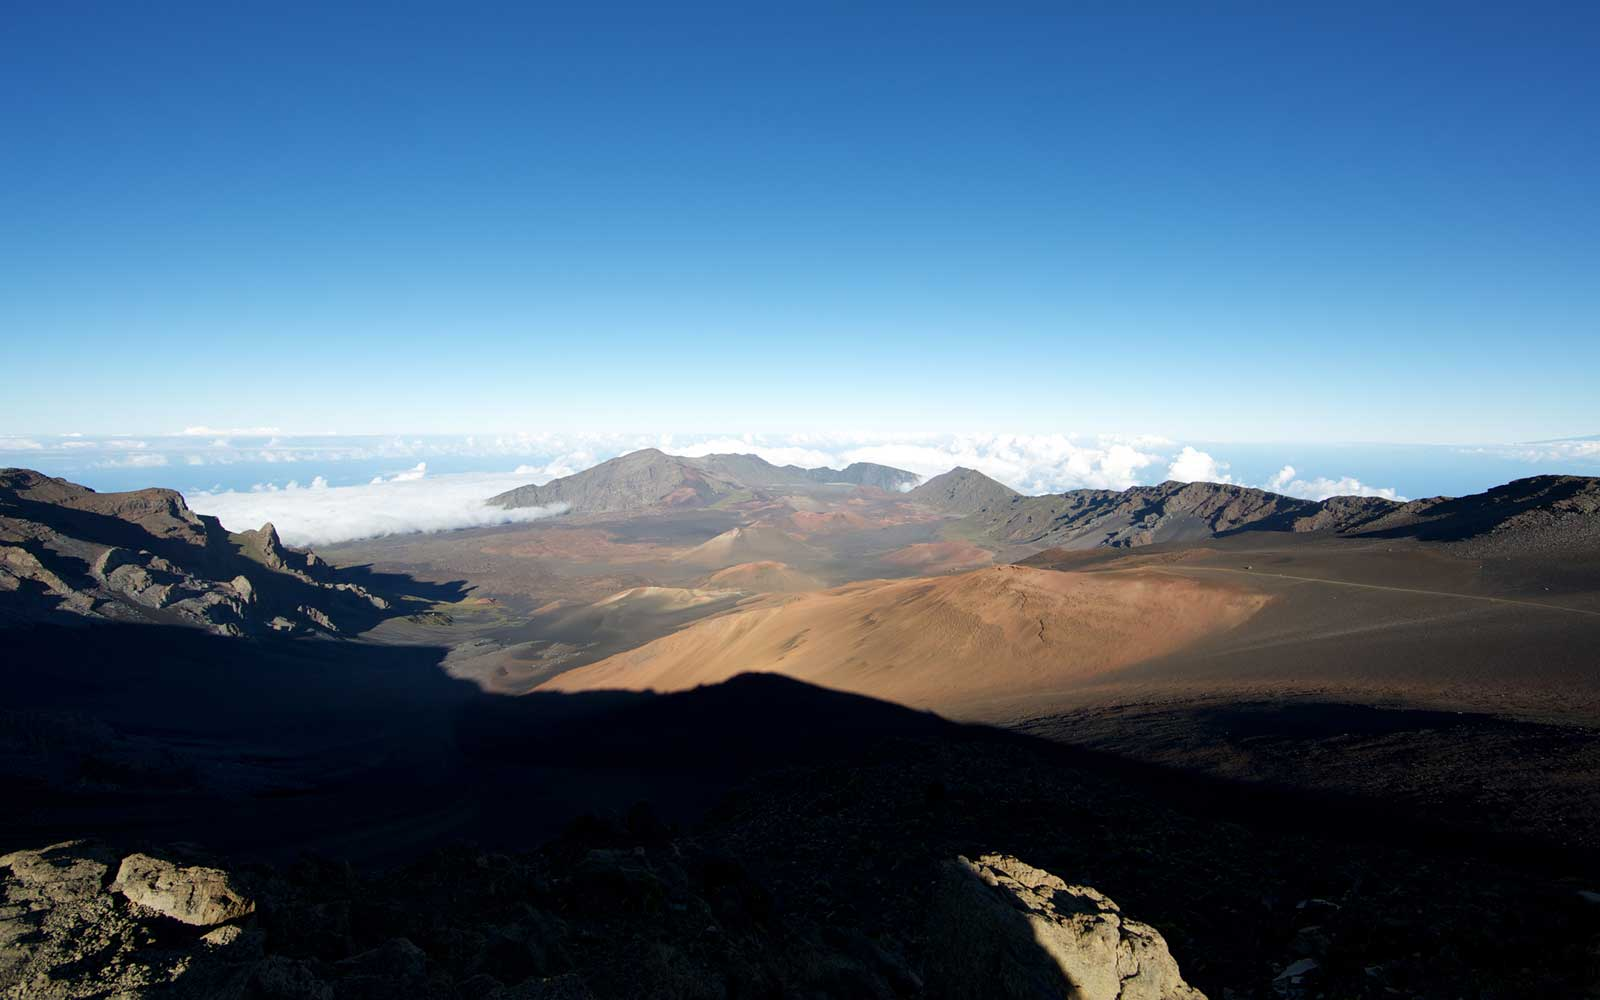 Early morning Haleakala Crater